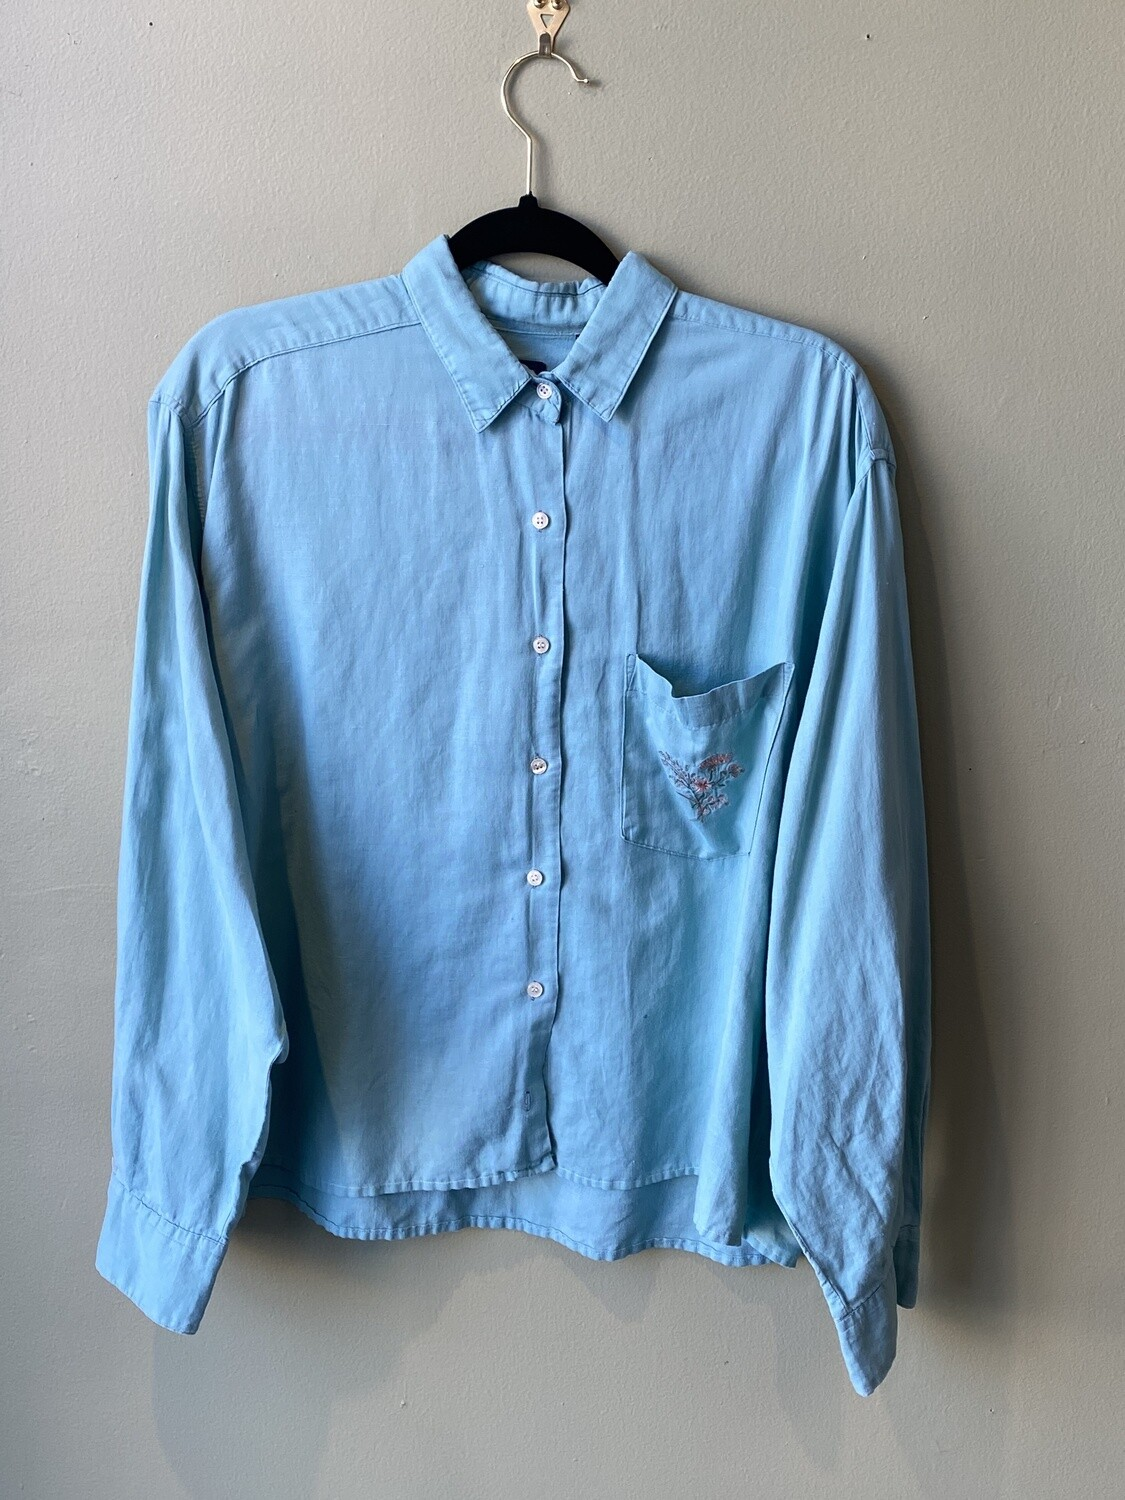 Gap Camp Shirt w/Floral Pocket Embroidery